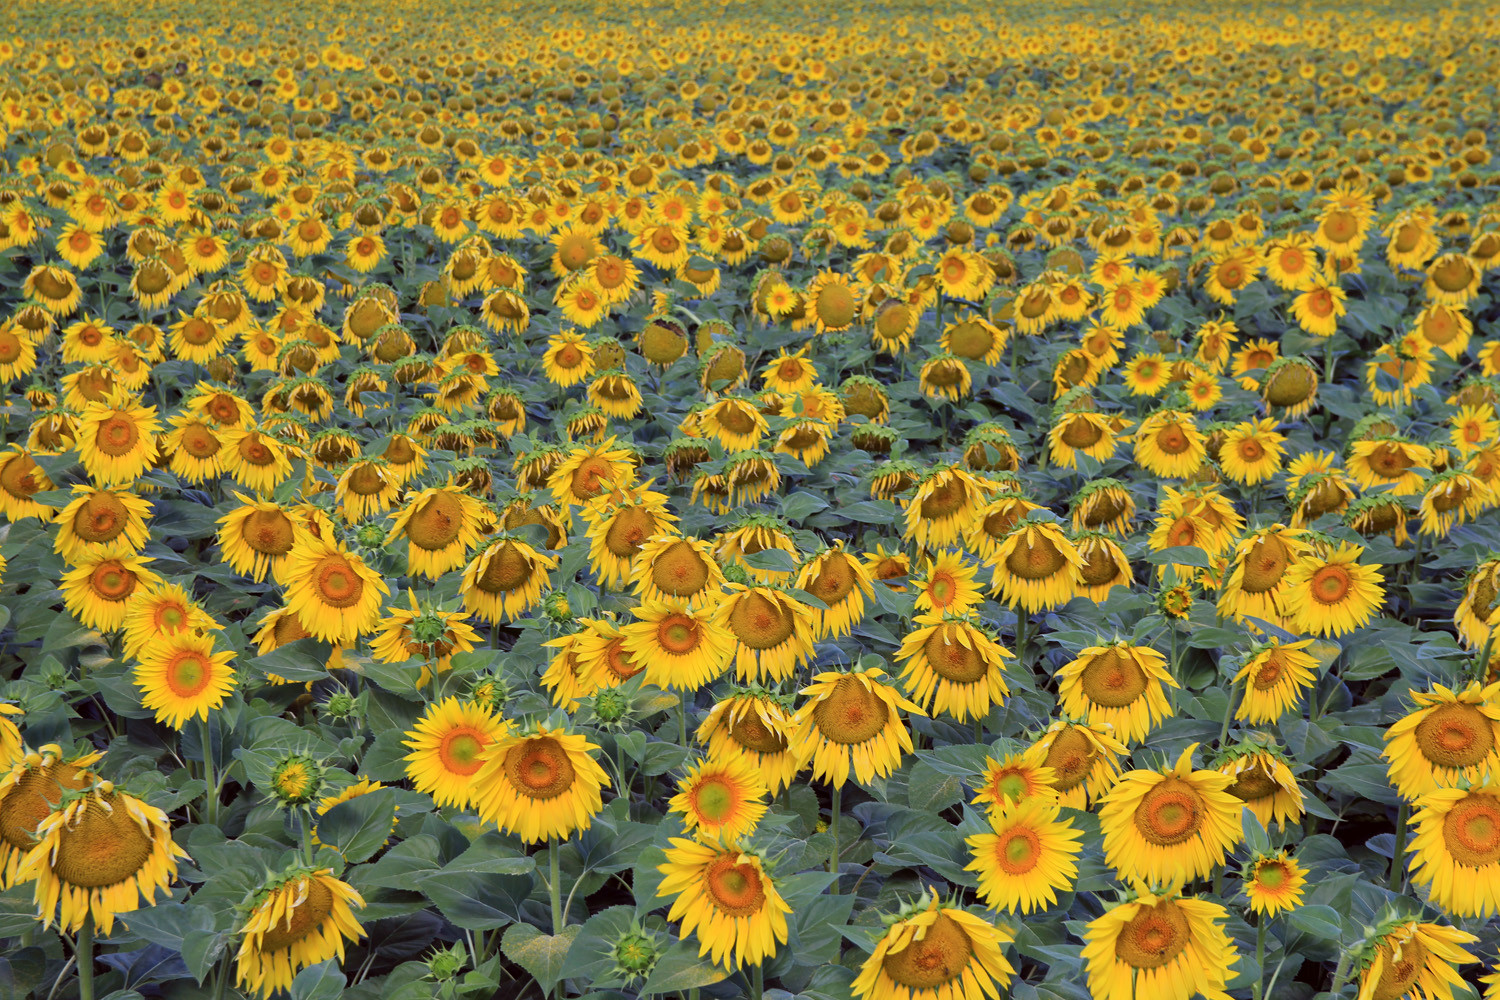 Sunflowerfield (Domingo Pérez)